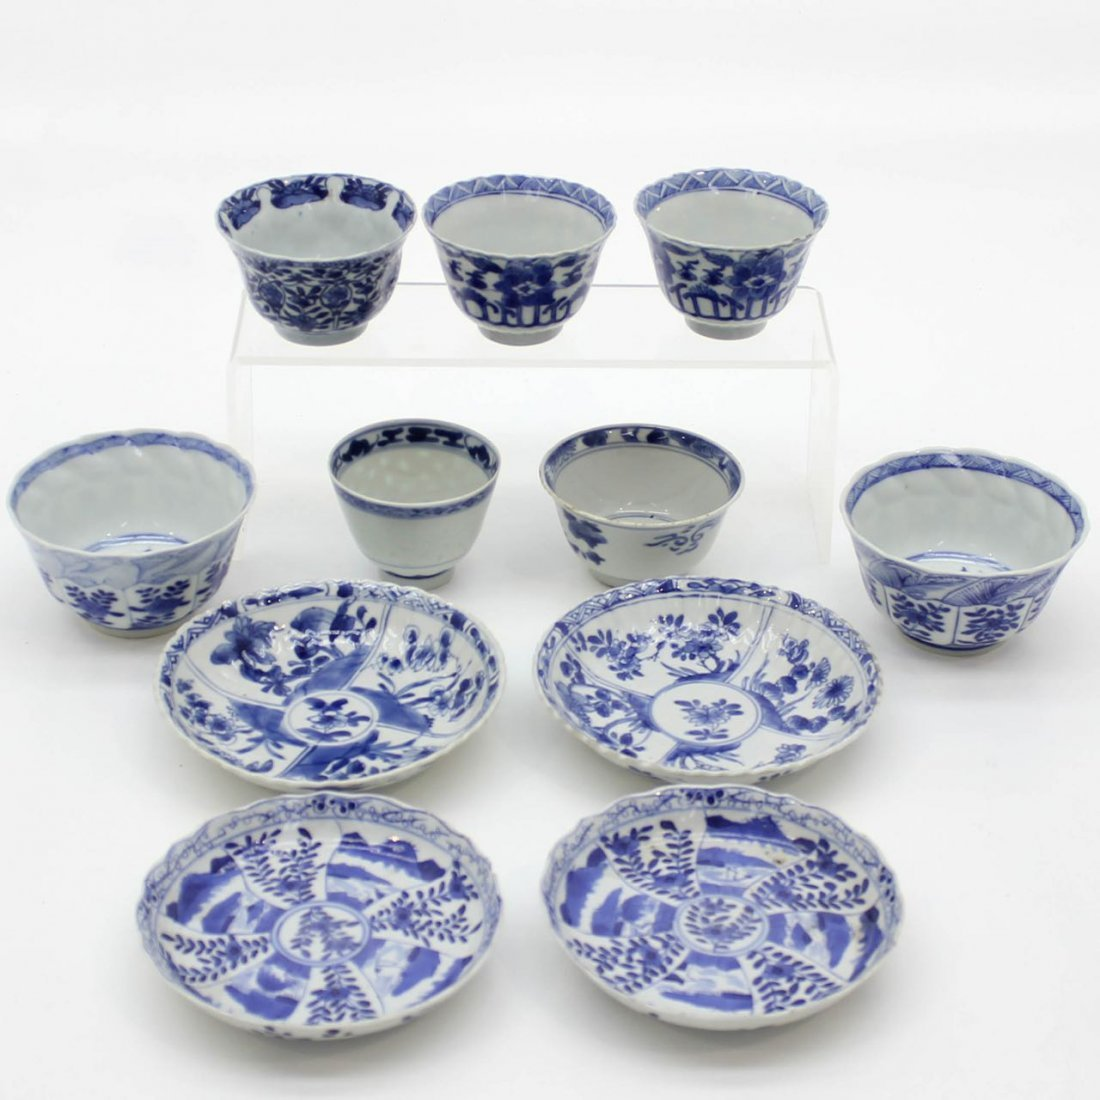 18th / 19th Century China Porcelain Cups & Saucers